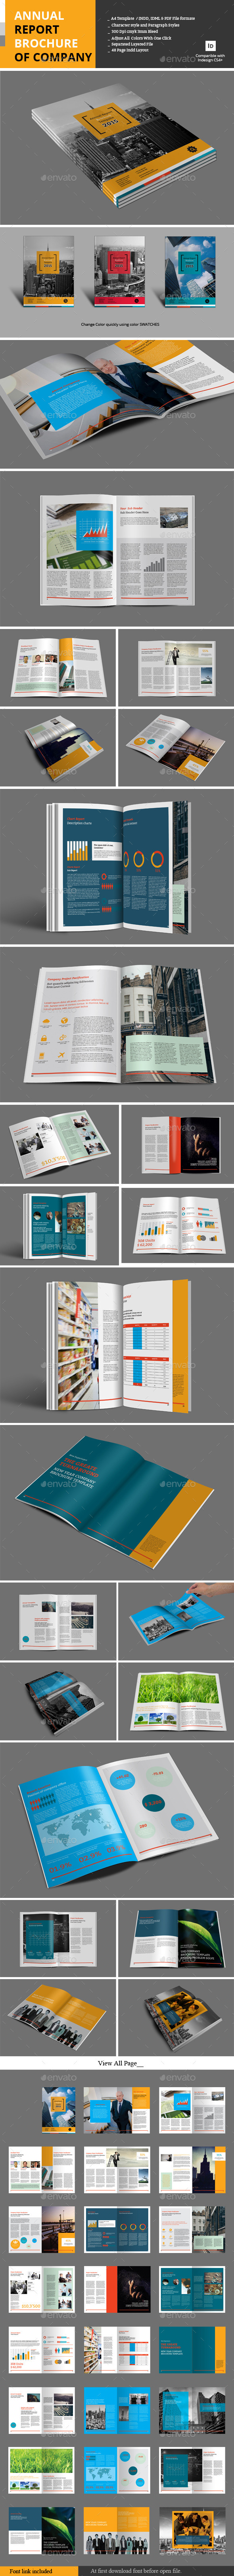 Annual Report Brochure of Company - Informational Brochures